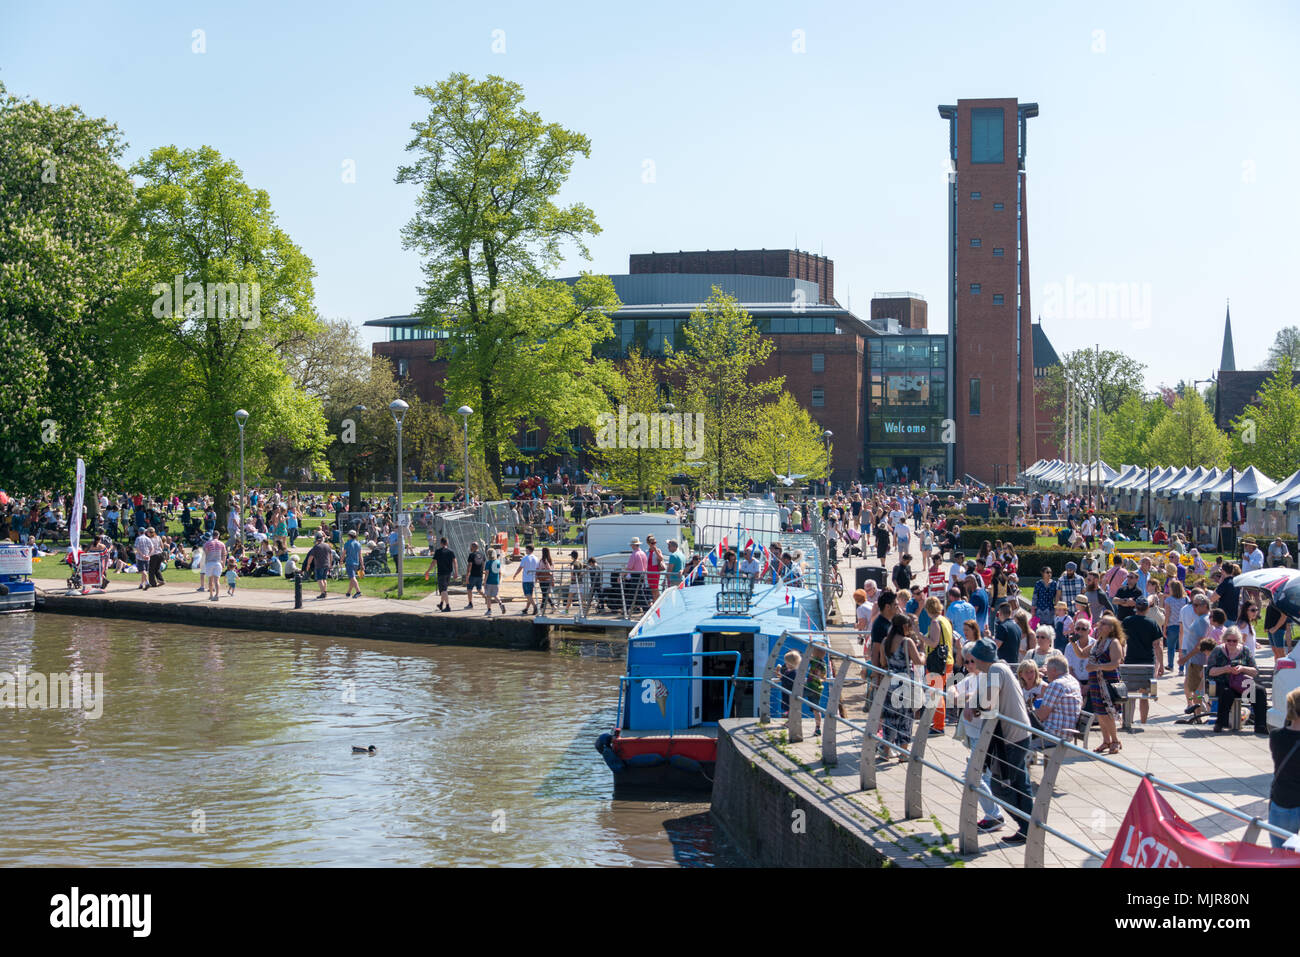 Stratford upon Avon Warwickshire, UK,  May 6th 2018.  bank holiday crowds of people enjoying the river avon in rowing boats Credit: paul rushton/Alamy Live News - Stock Image